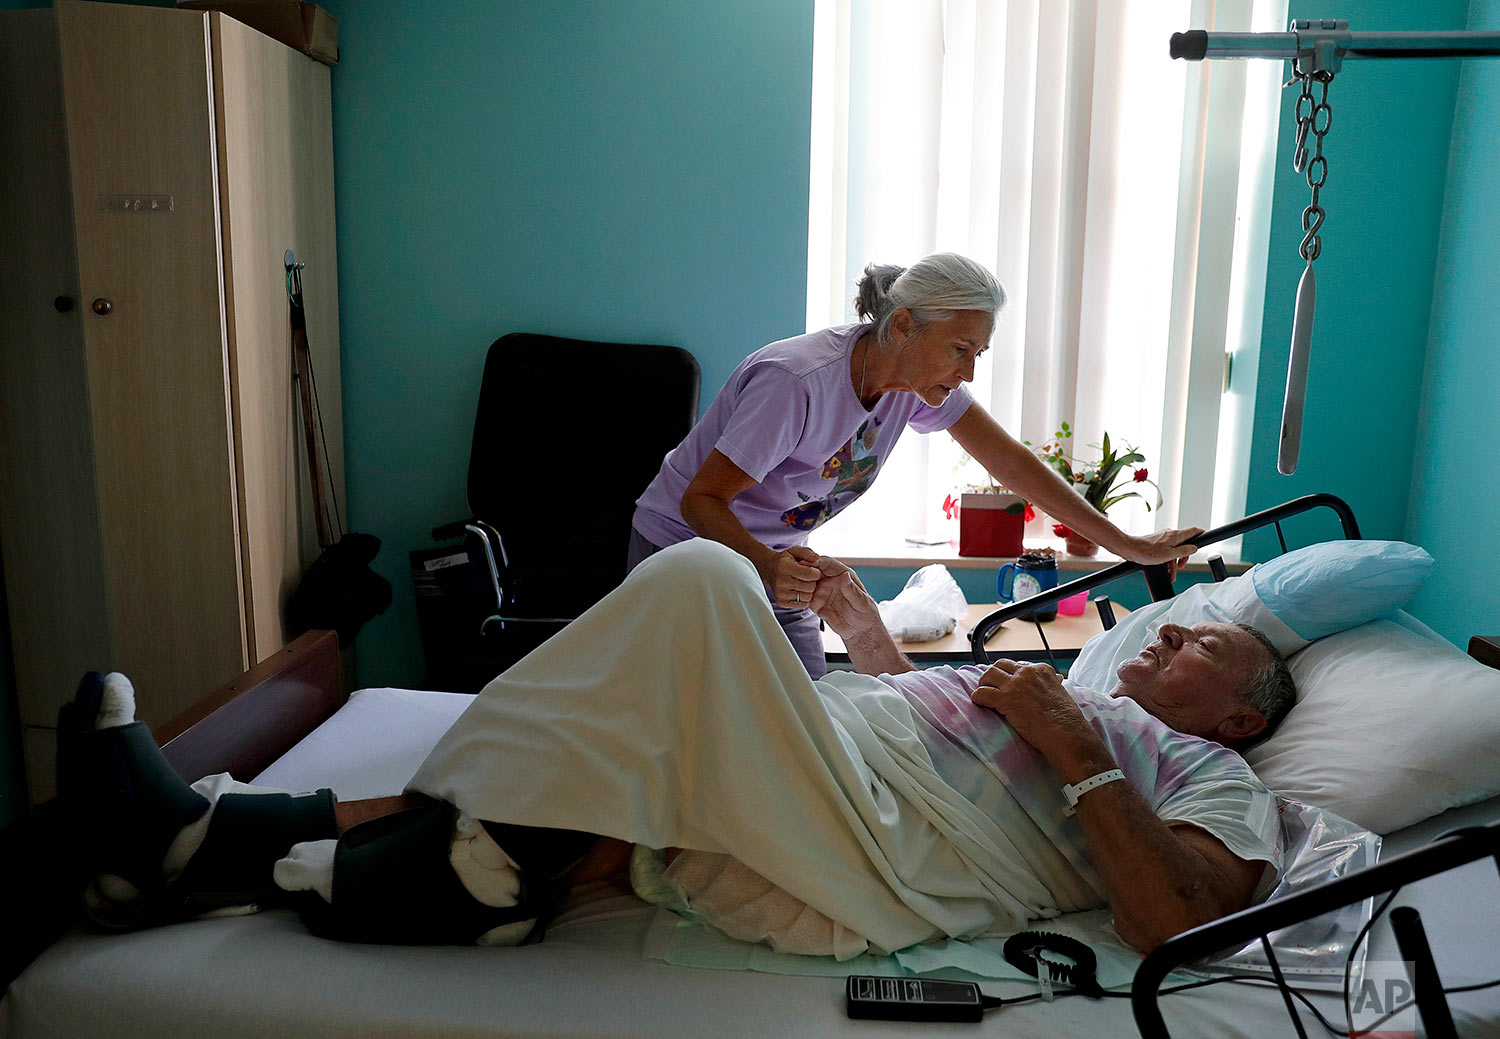 """Marge Brown, 65, says goodbye to her father, George Brown, 90, before he is evacuated from a healthcare home in Morehead City, N.C., Wednesday, Sept. 12, 2018, as Hurricane Florence approaches the east coast. """"I'd like to stay and see what happens. I'm 90 plus,"""" said Brown, a WWII veteran who says he's survived a plane crash and severe burns from a laboratory fire where he once worked. (AP Photo/David Goldman)"""